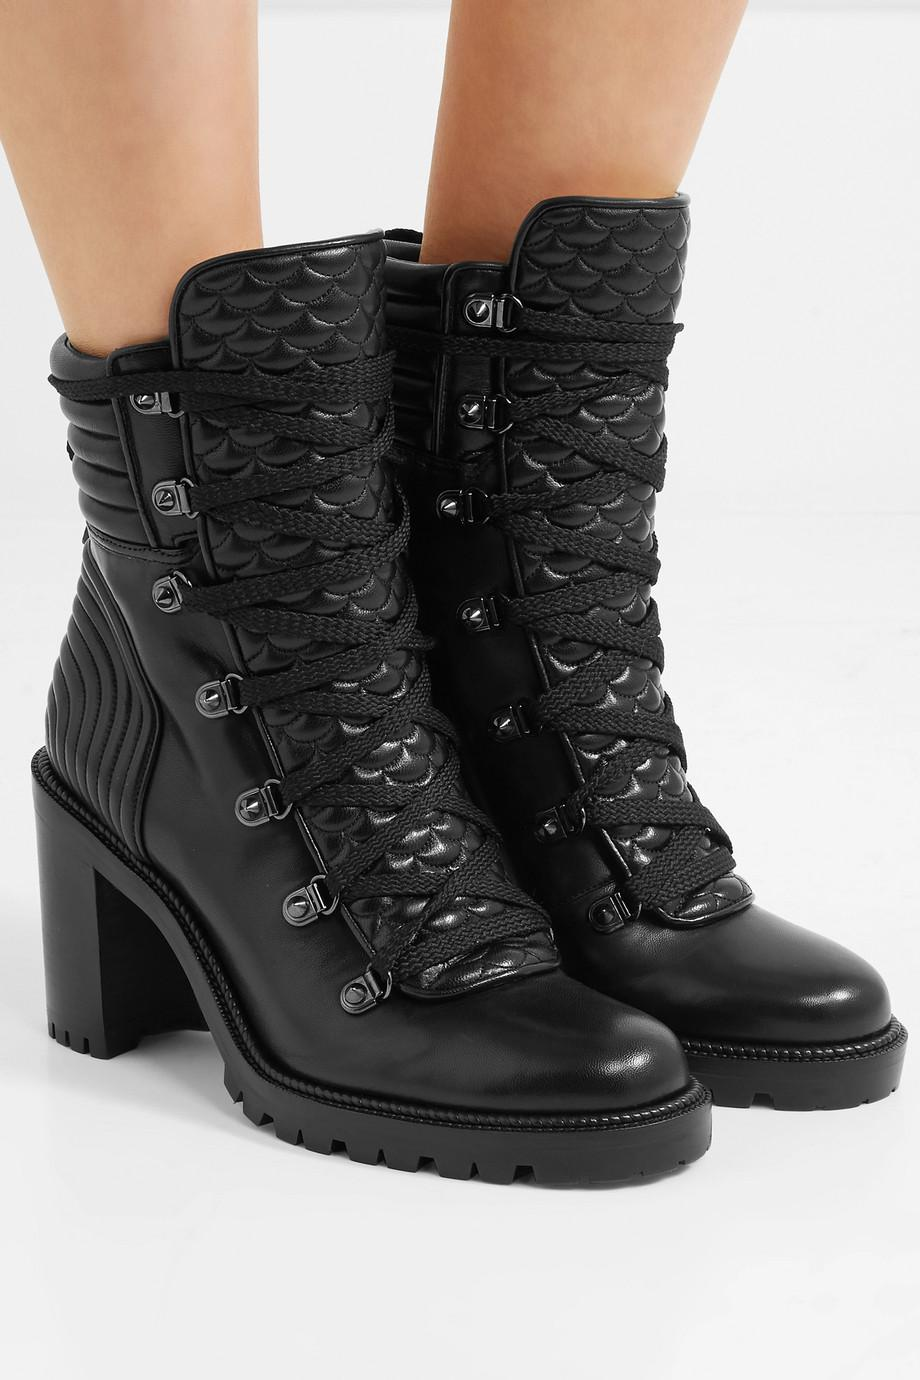 35815c0413f7 ... authentic christian louboutin black mad 70 spiked quilted leather ankle  boots lyst. view fullscreen 2564b